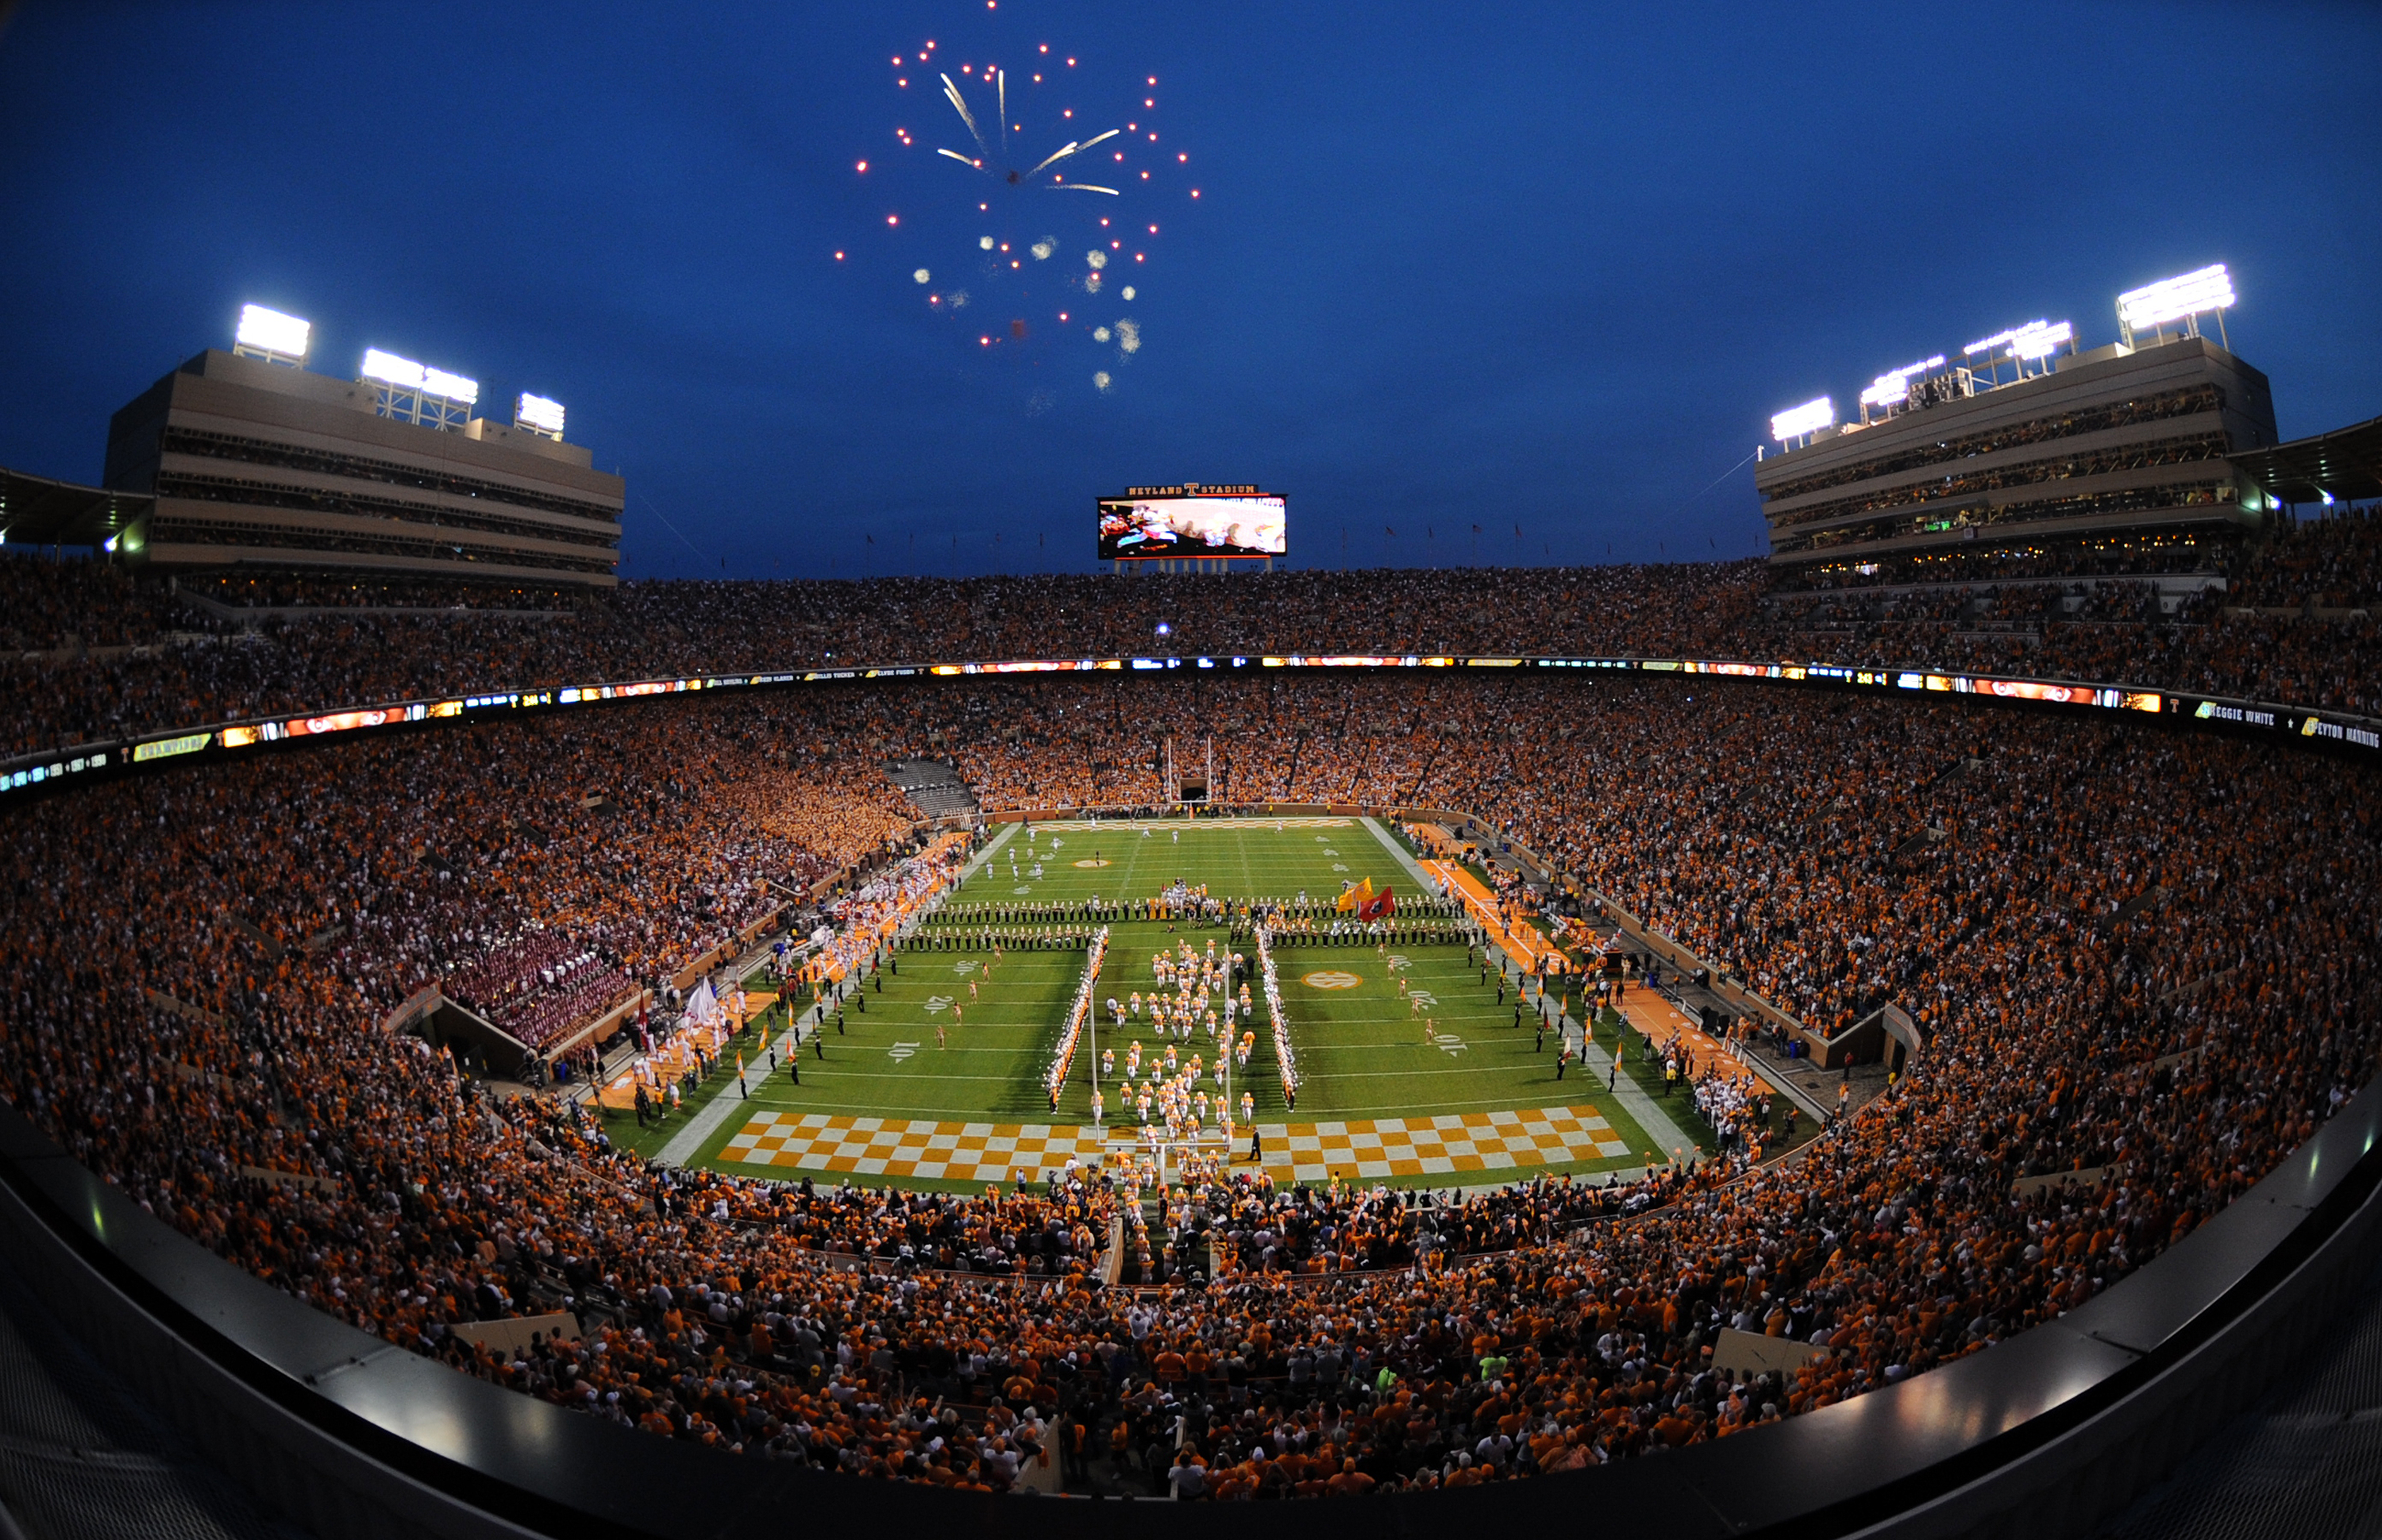 University Of Tennessee Football wallpaper 222227 3000x1940